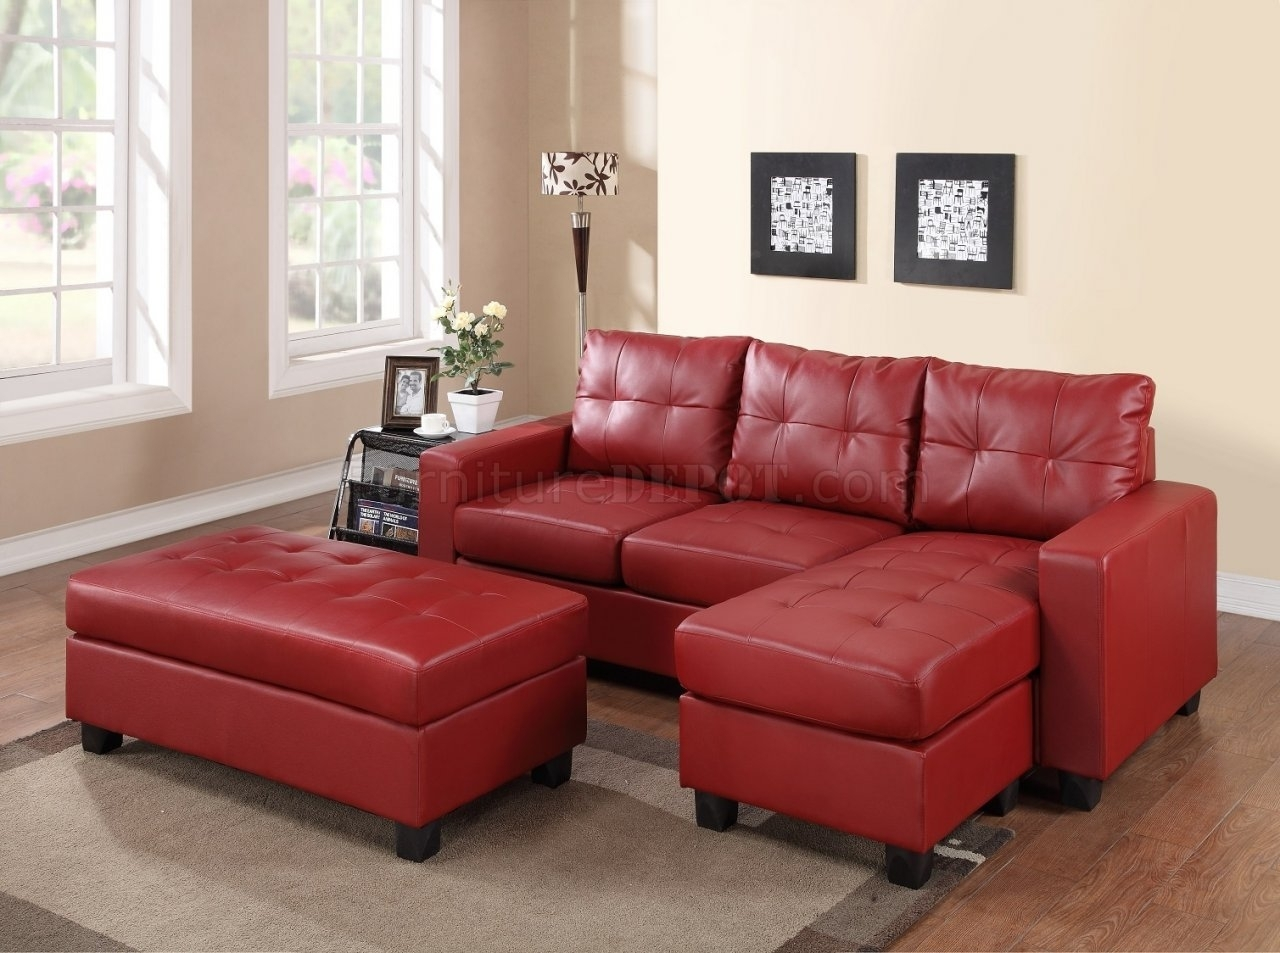 Beautiful Red Leather Sectional Sofa With Chaise Photos With Red Leather Sectional Sofas With Recliners (Image 1 of 10)